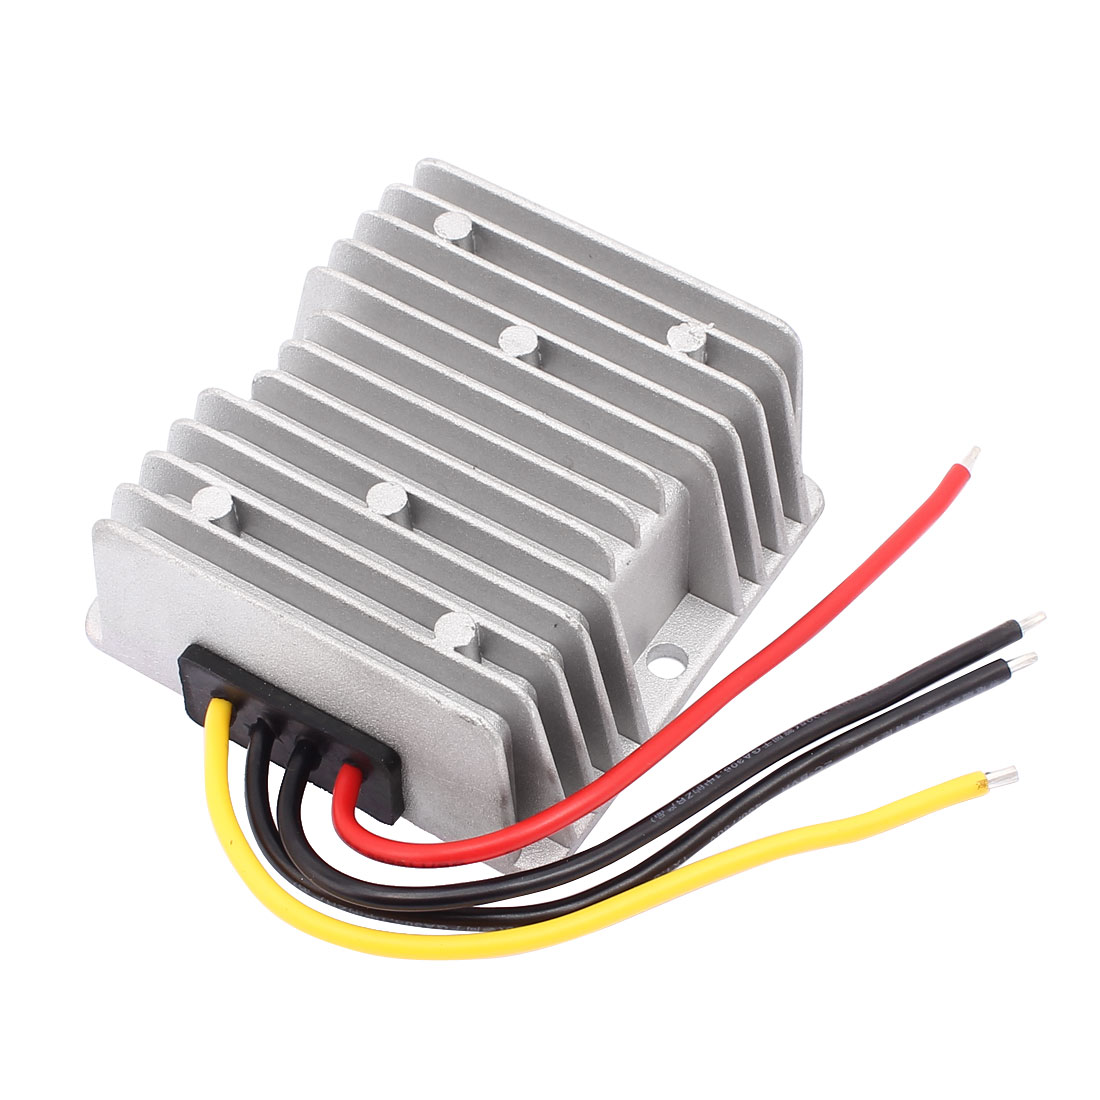 DC12V/24V(8V-40V) Step-down to DC5V 20A 100W Waterproof Power Converter Regulator Transformer